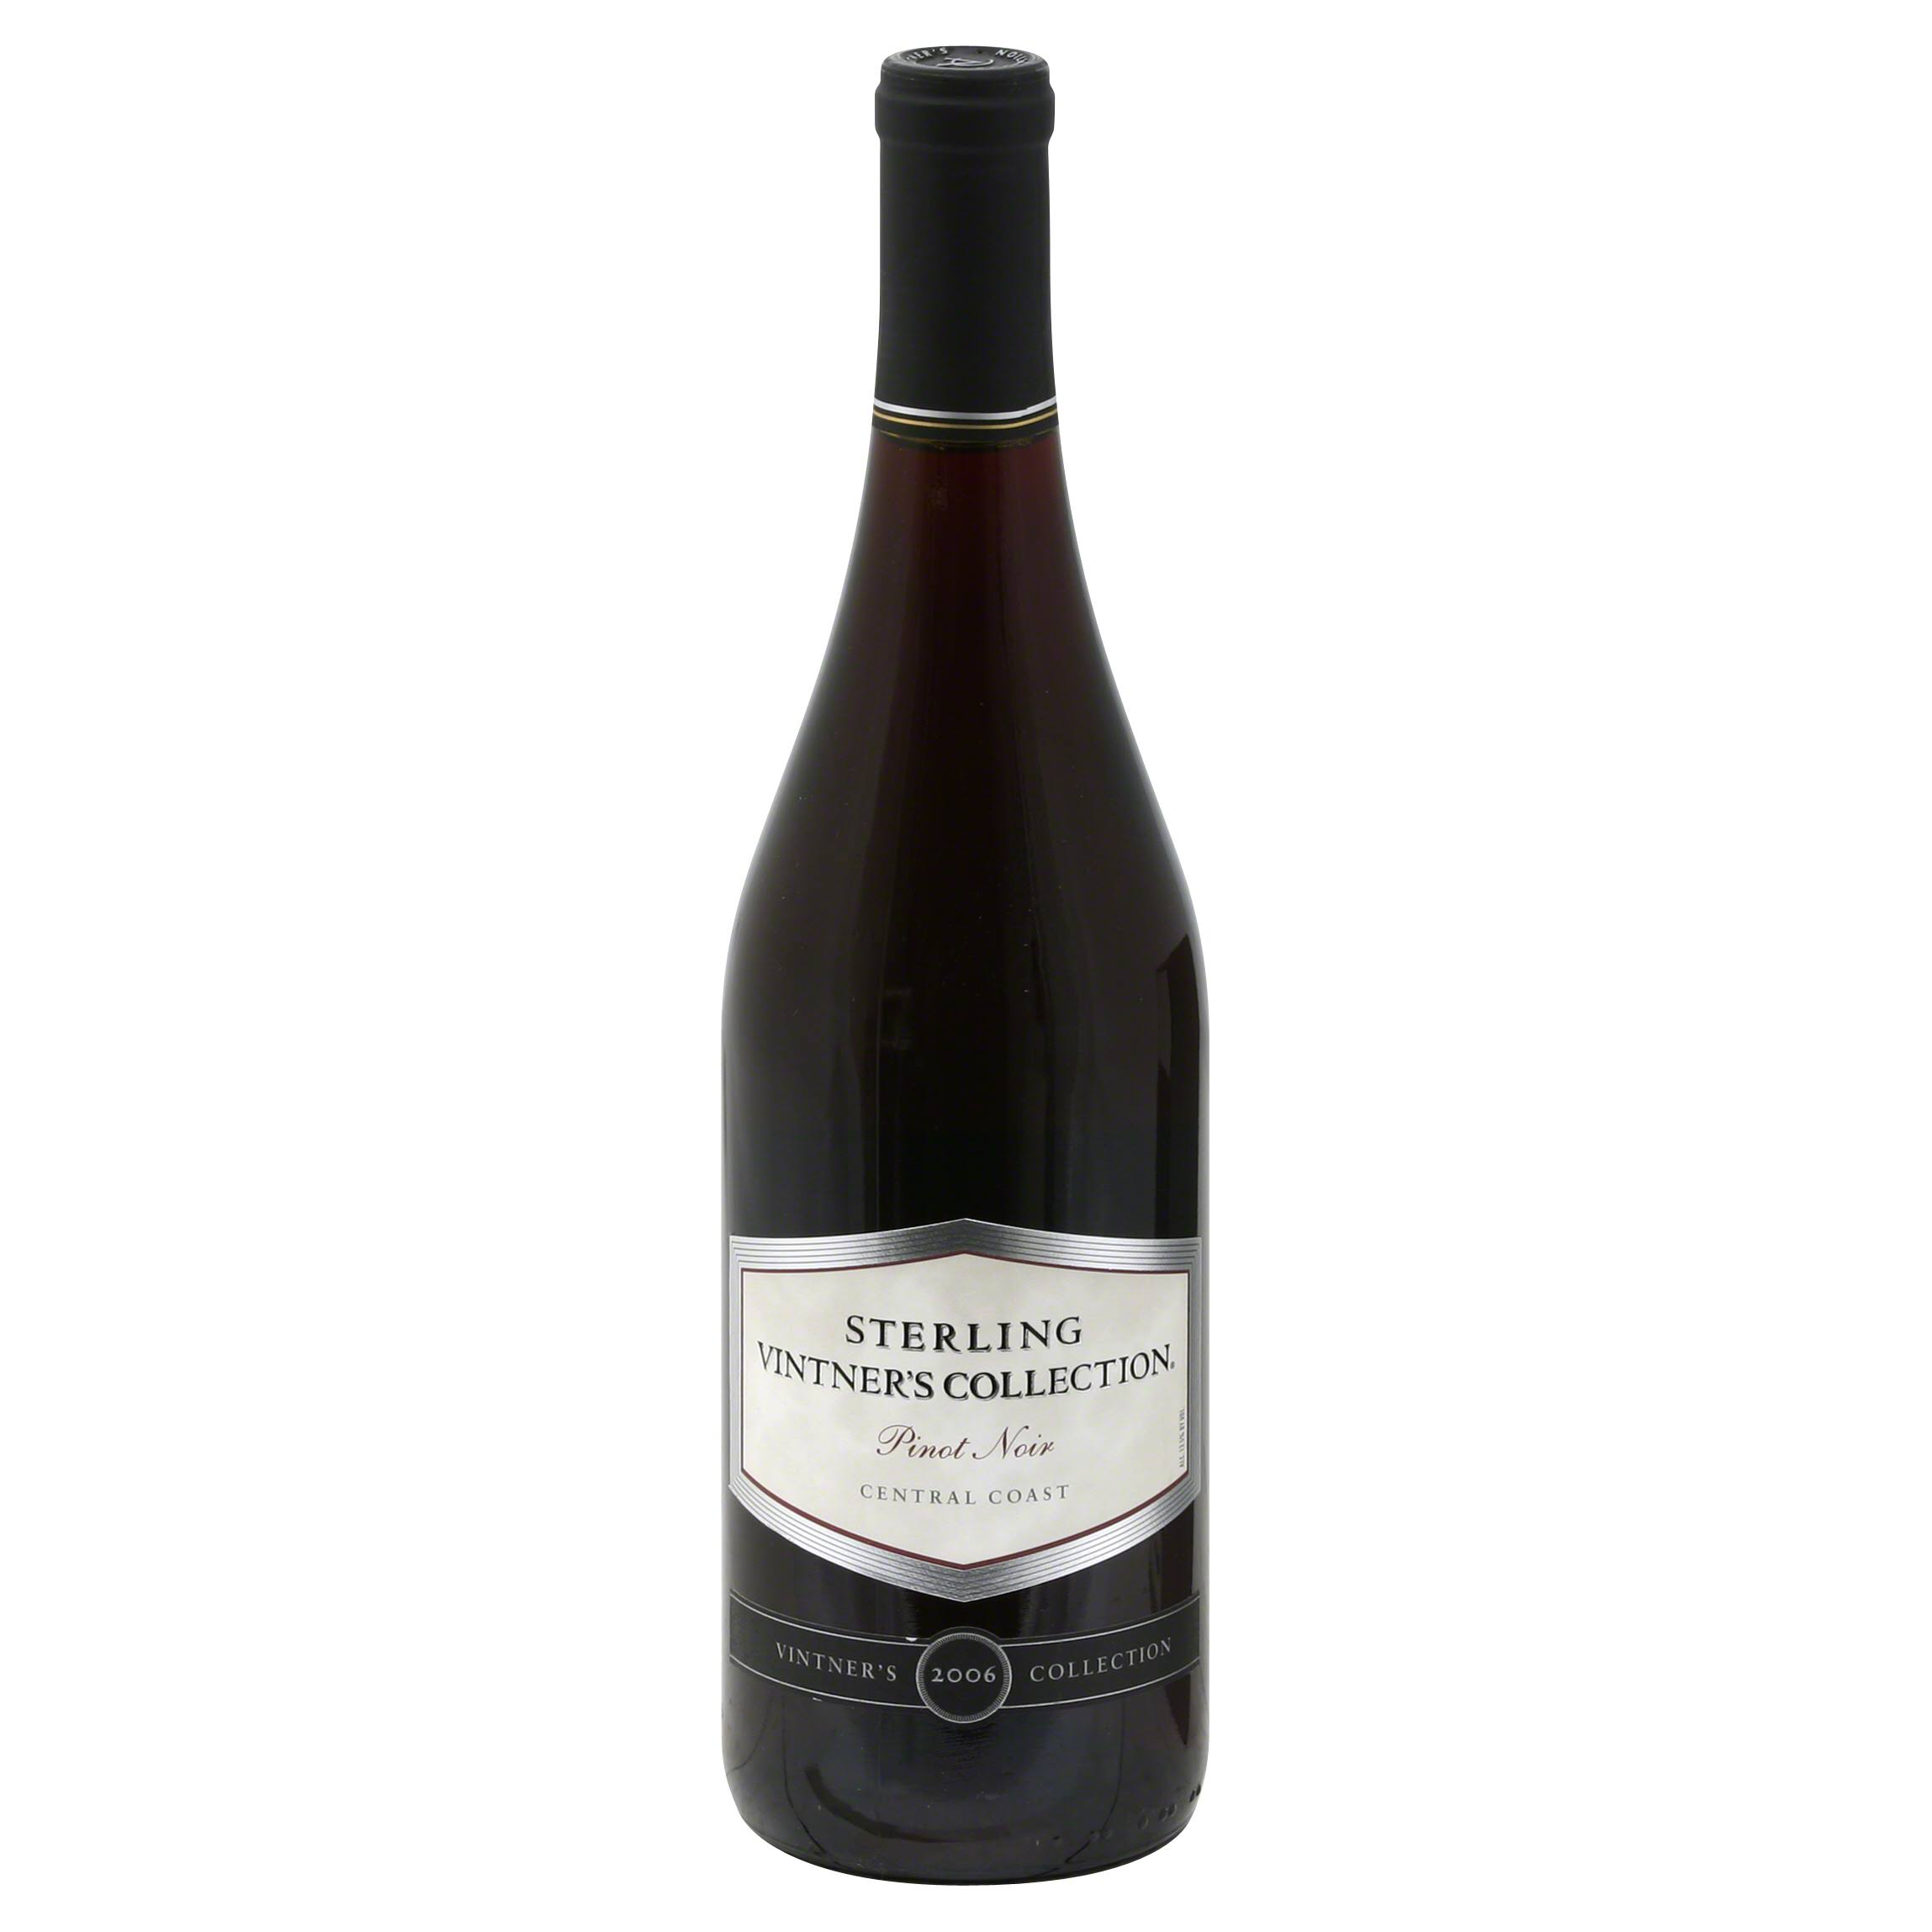 Sterling Vintner's Collection Pinot Noir, Central Coast, 2006 - 750 ml